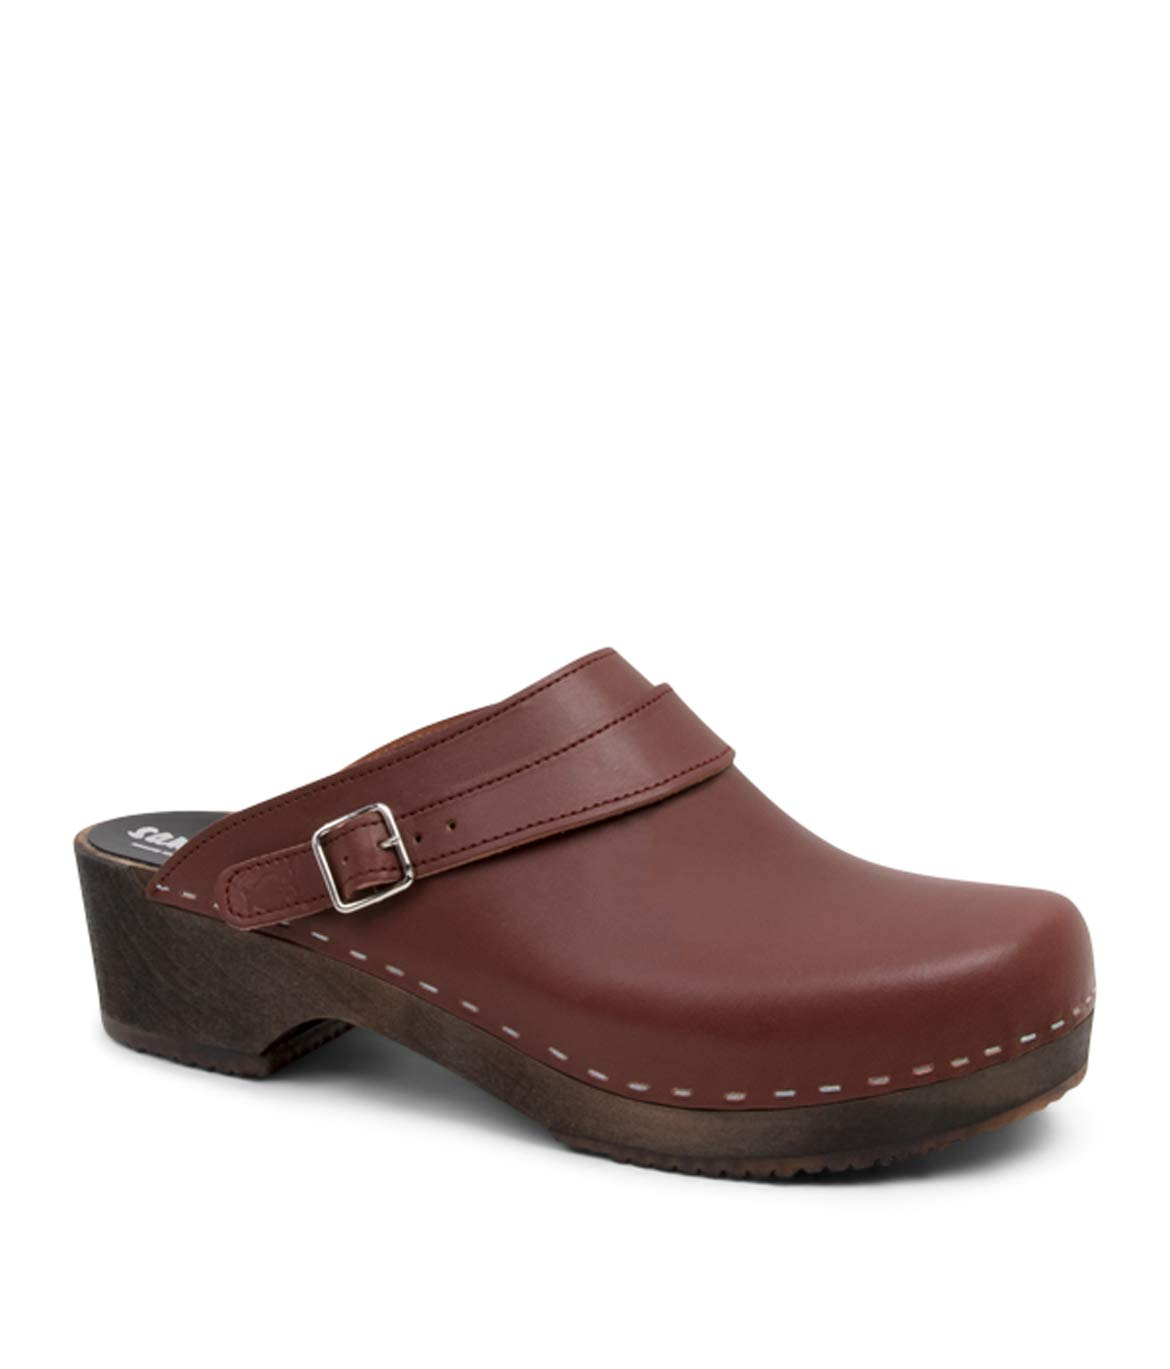 Sandgrens Swedish Wooden Clogs for Men with Leather Upper | Nybro (Dark Base) Cognac, EU 44 by Sandgrens (Image #1)